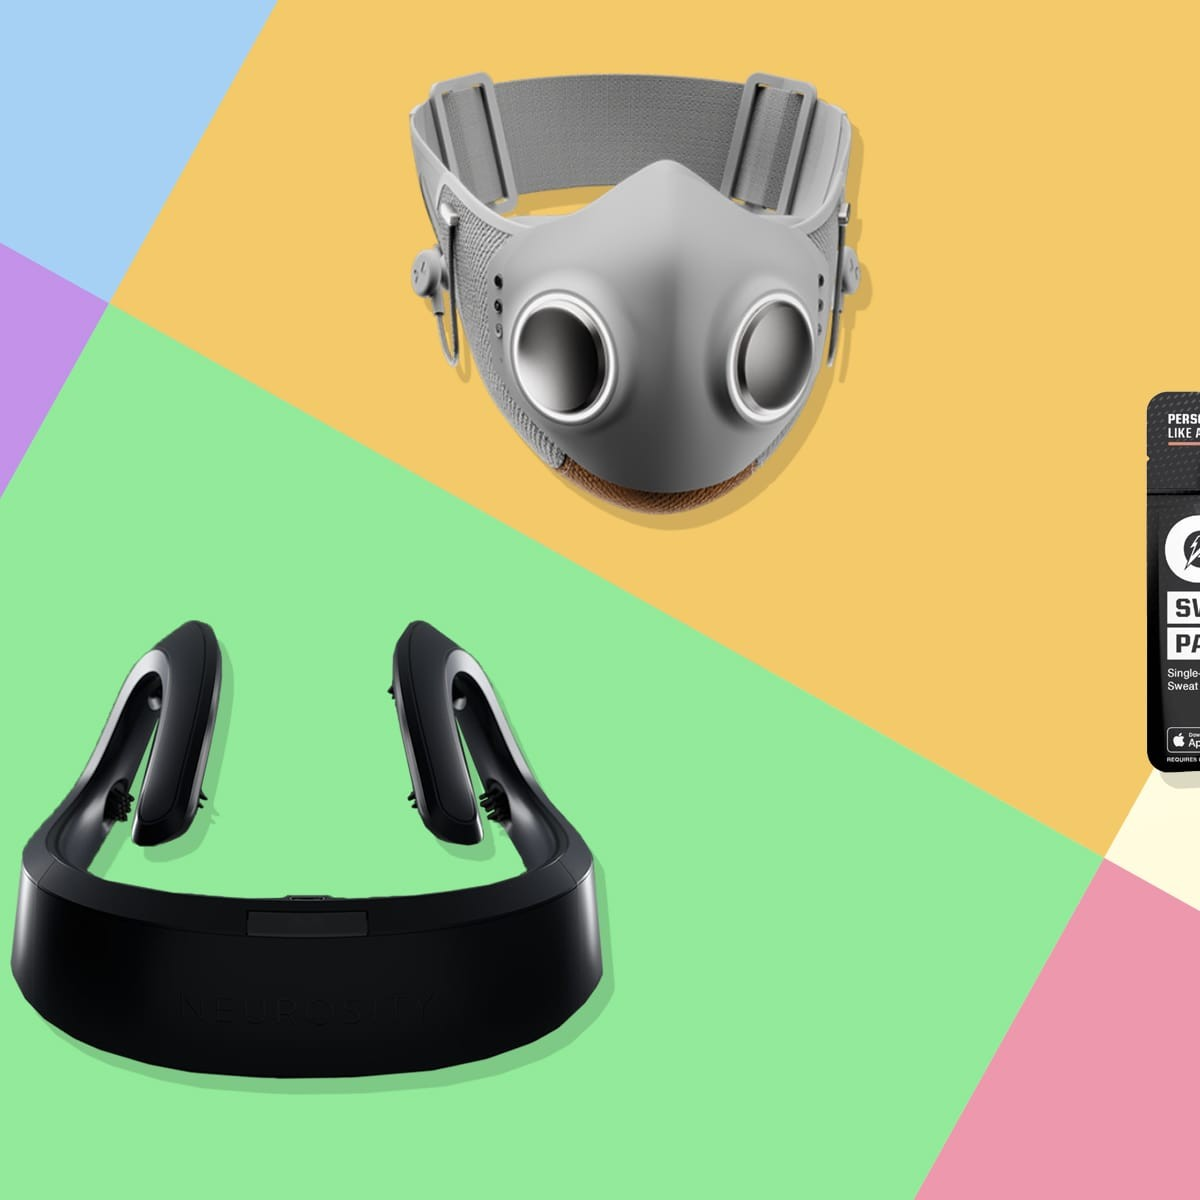 10 Must-see wearable tech gadgets that can actually improve your productivity thumbnail